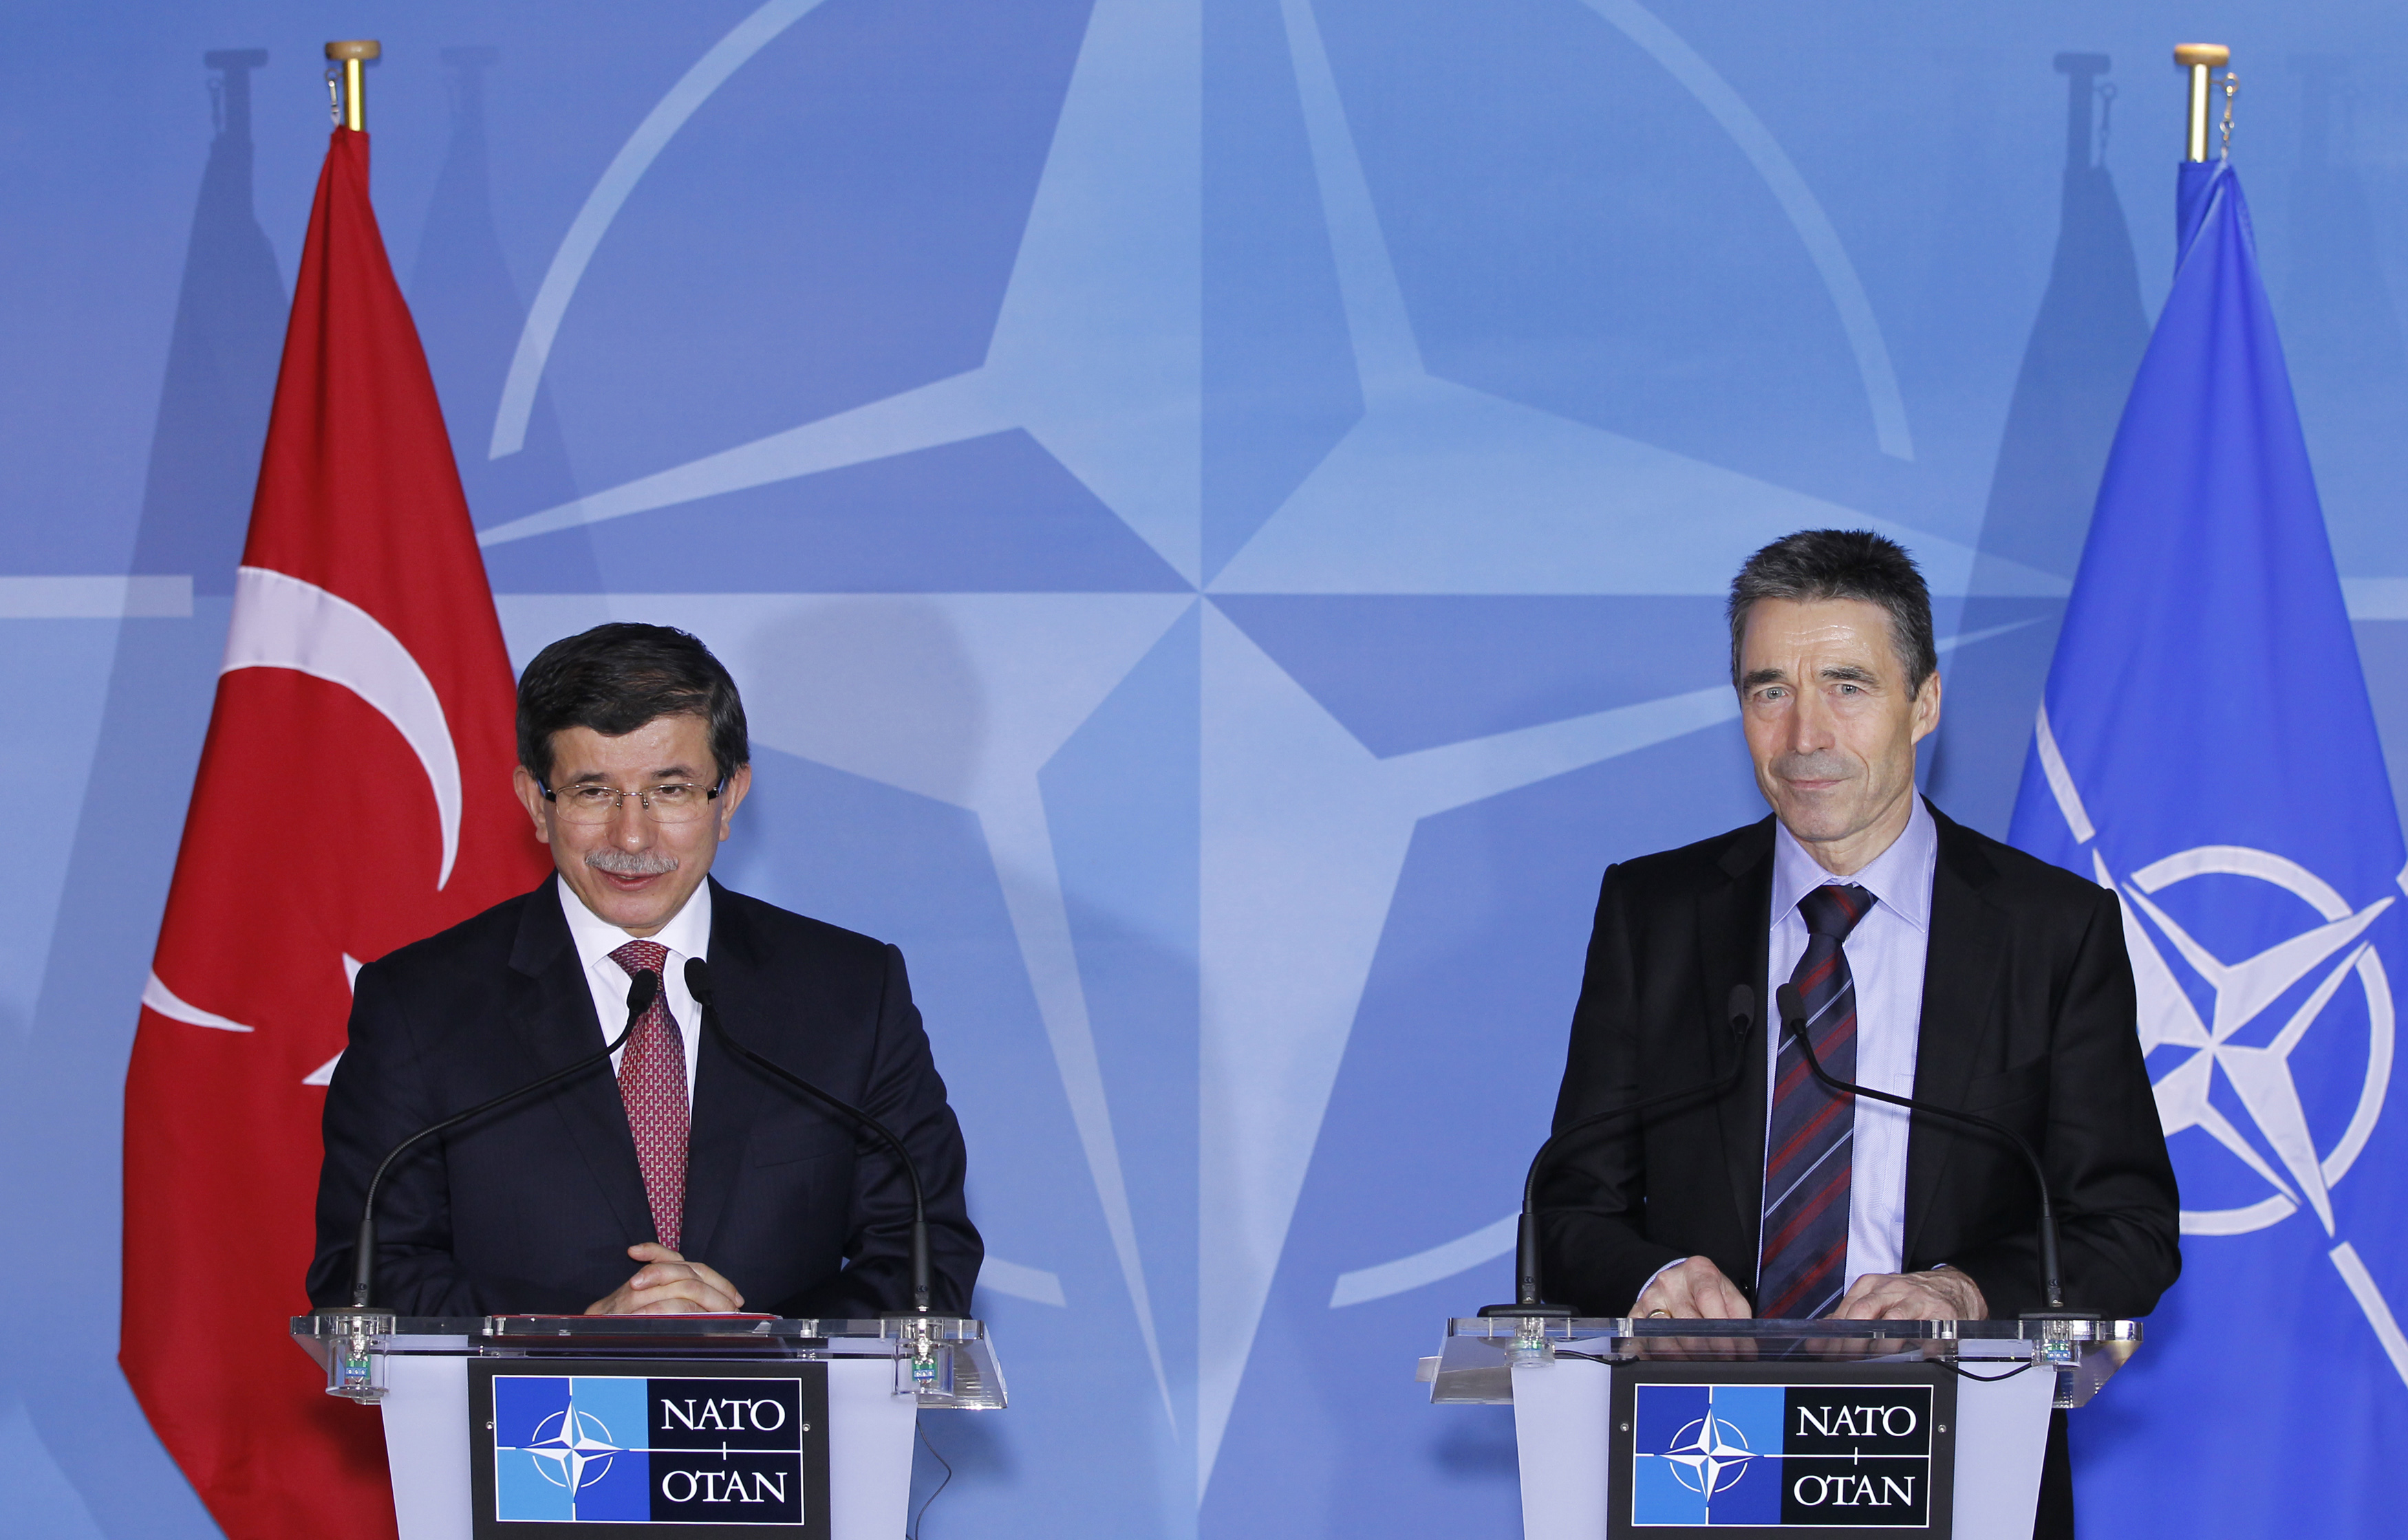 NATO Secretary General Anders Fogh Rasmussen and Turkey's Foreign Minister Ahmet Davutoglu (L) address a joint news conference after their meeting at the Alliance's headquarters in Brussels January 18, 2012. REUTERS/Francois Lenoir (BELGIUM - Tags: POLITICS MILITARY)